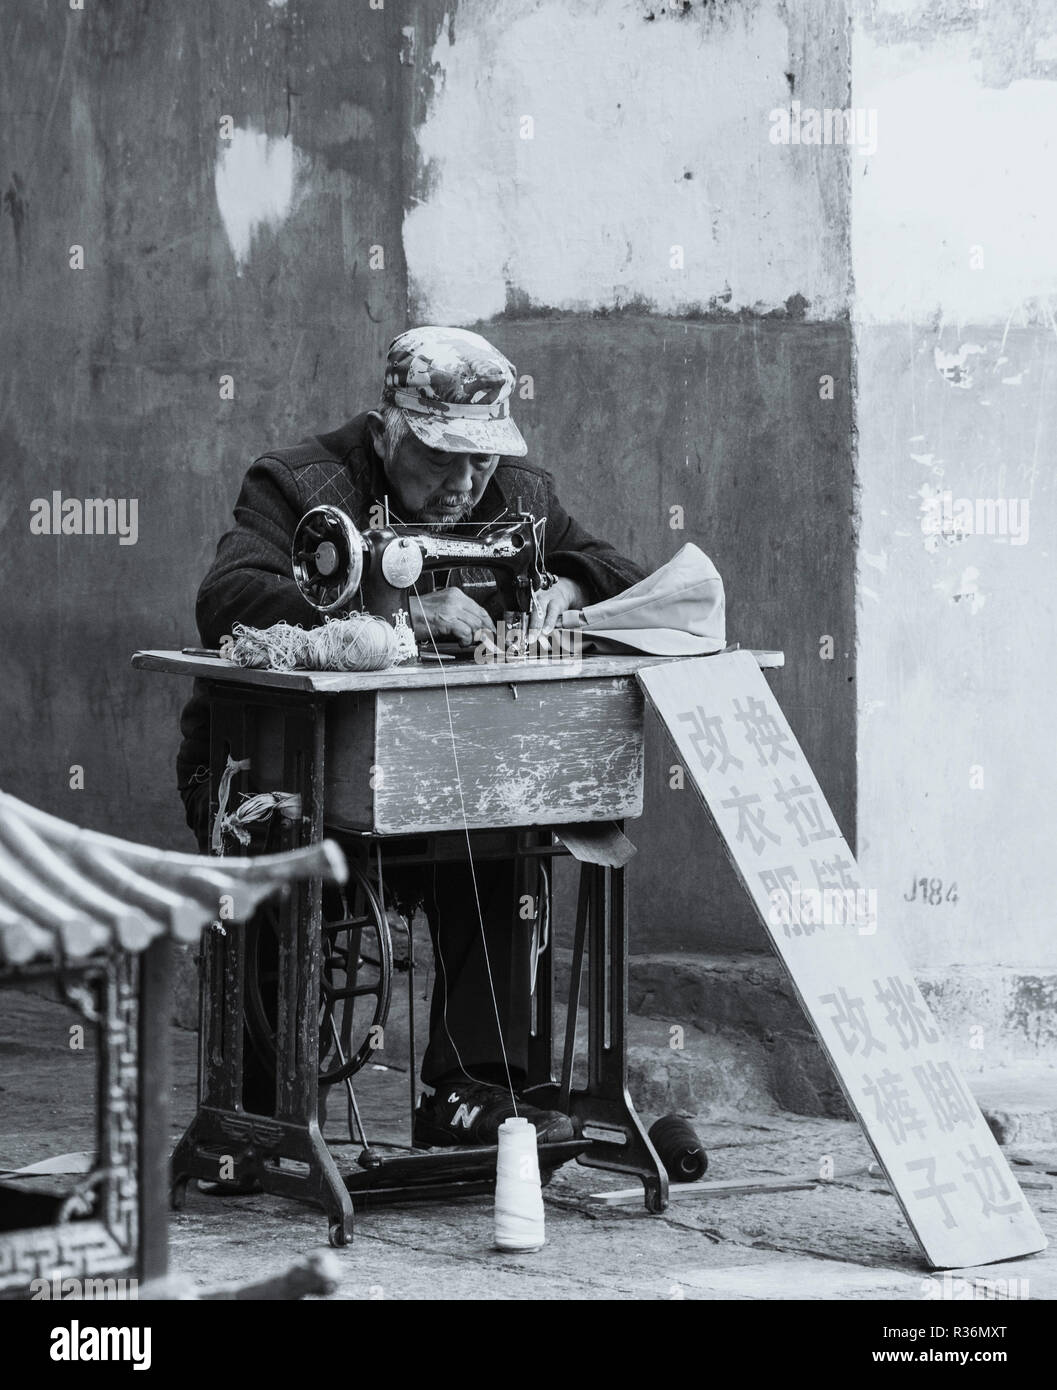 Black and white photo of elderly chinese man earning a living using a sewing machine for clothing alterations in a street in Dali China. - Stock Image